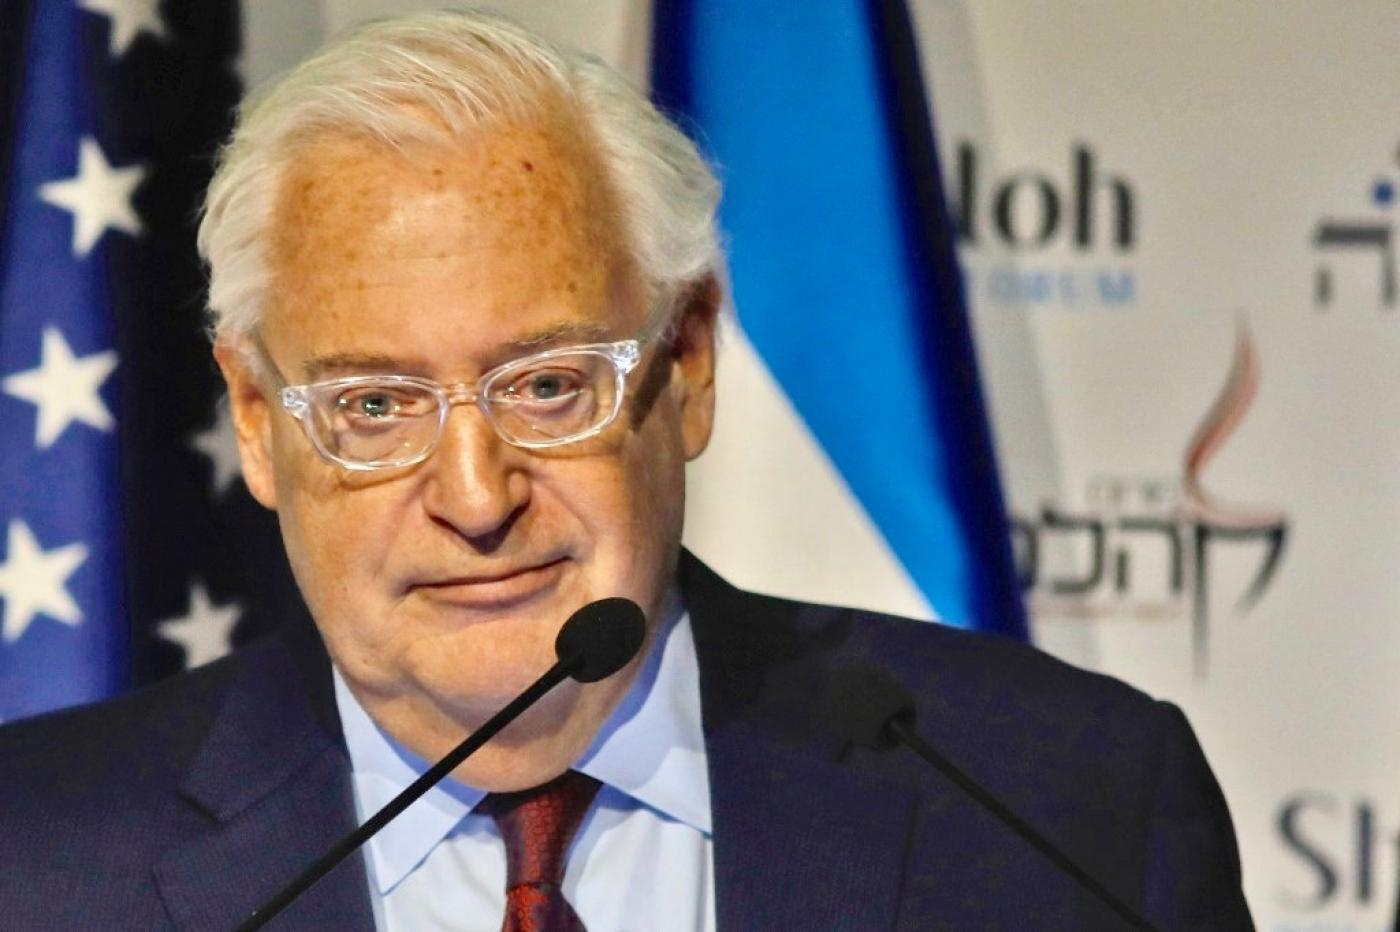 David Friedman predicted that the normalisation deals marked the beginning of the end of 'the Arab-Israeli conflict'